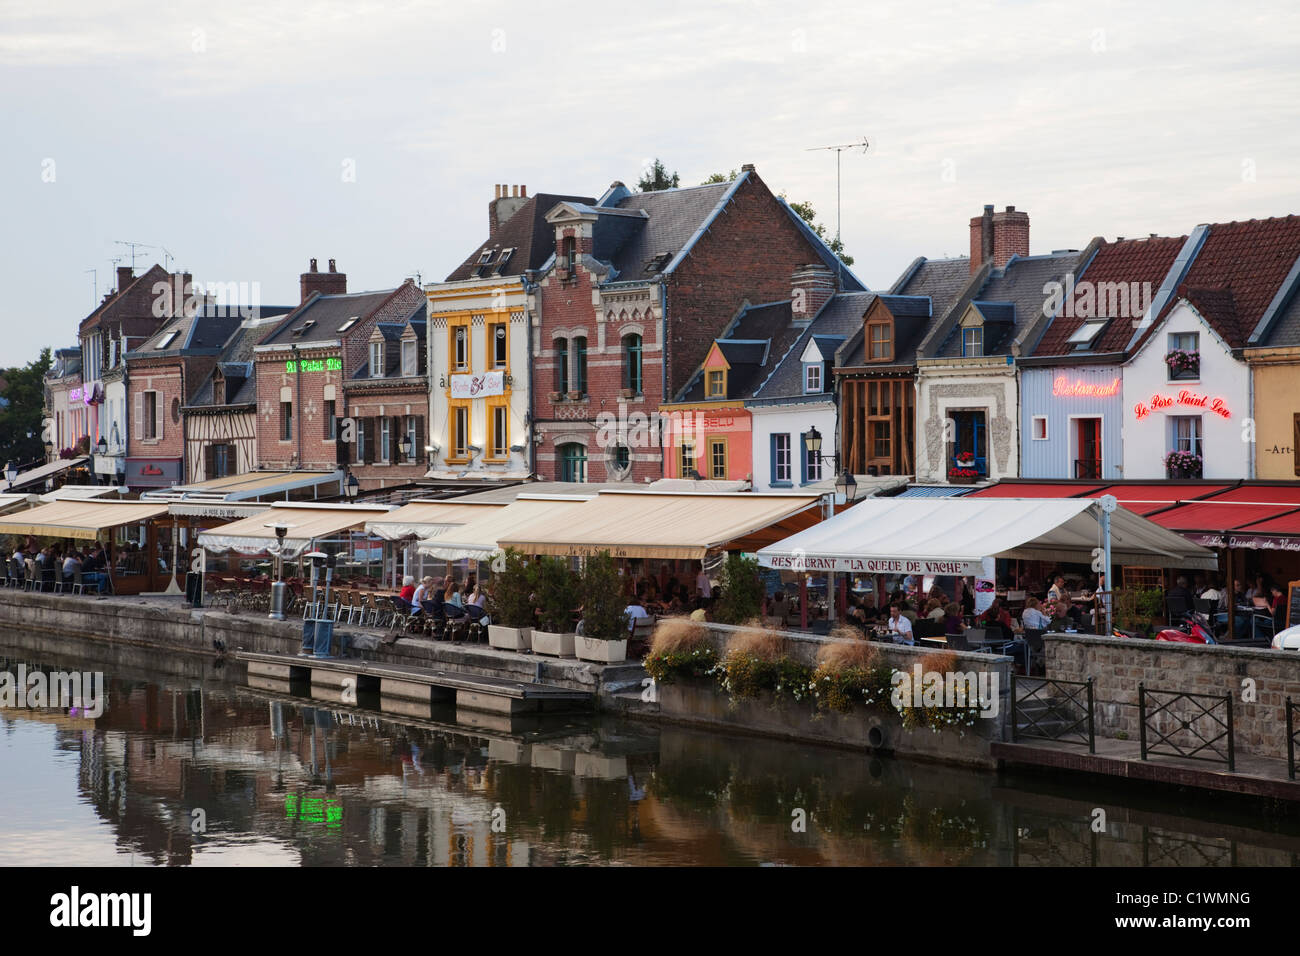 Buildings at the waterfront, Amiens, Somme, Picardy, France Stock Photo